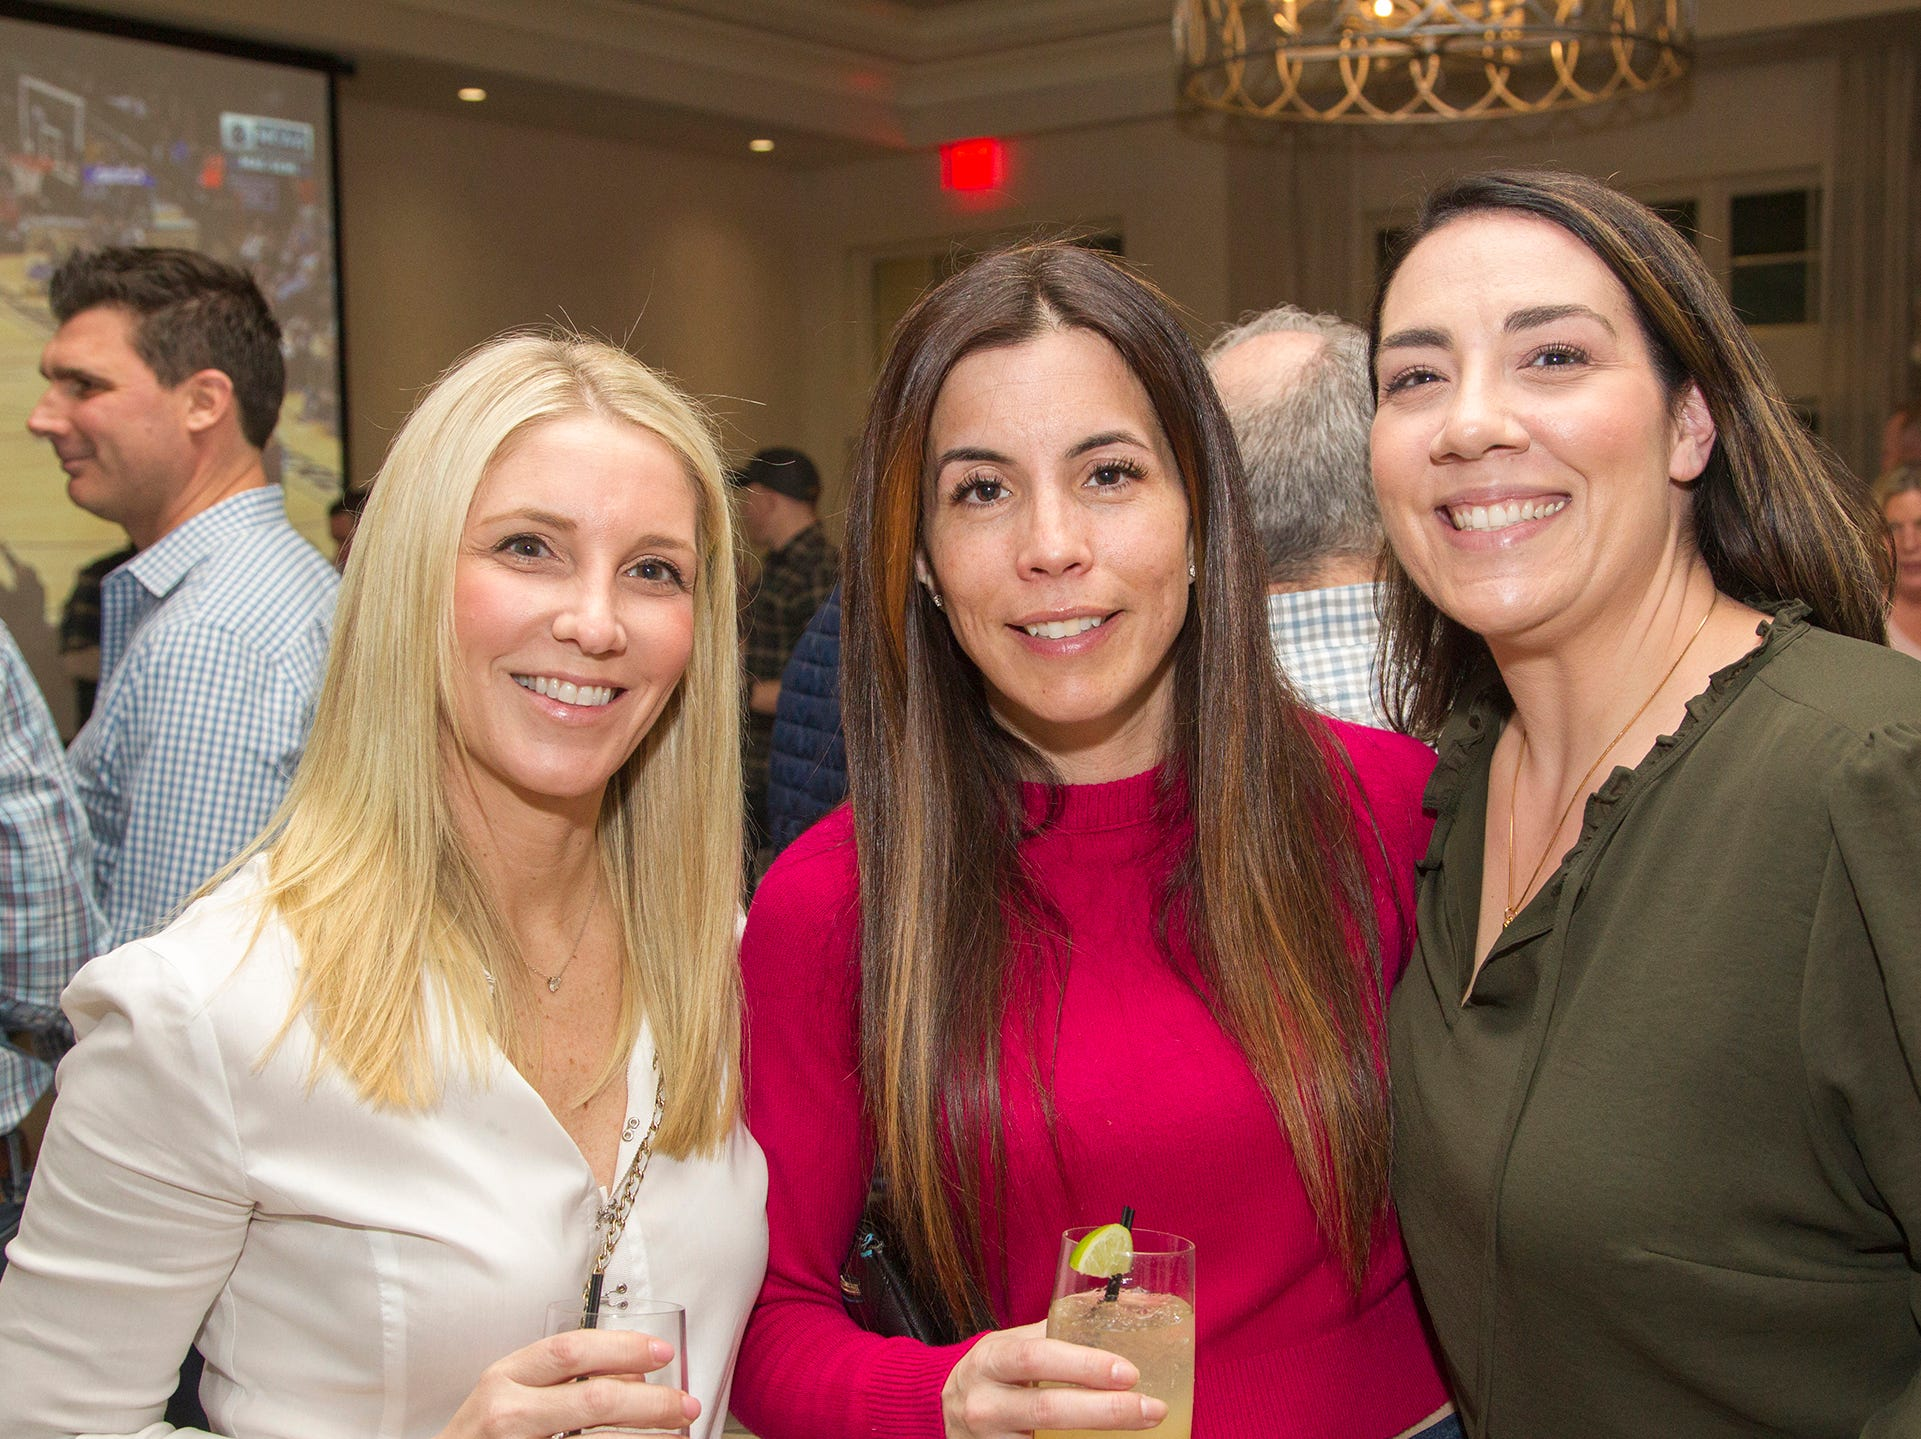 Iron Matt Foundation's 2019 March Mattness fundraiser at Indian Trail Club in Franklin Lakes. 03/16/2019